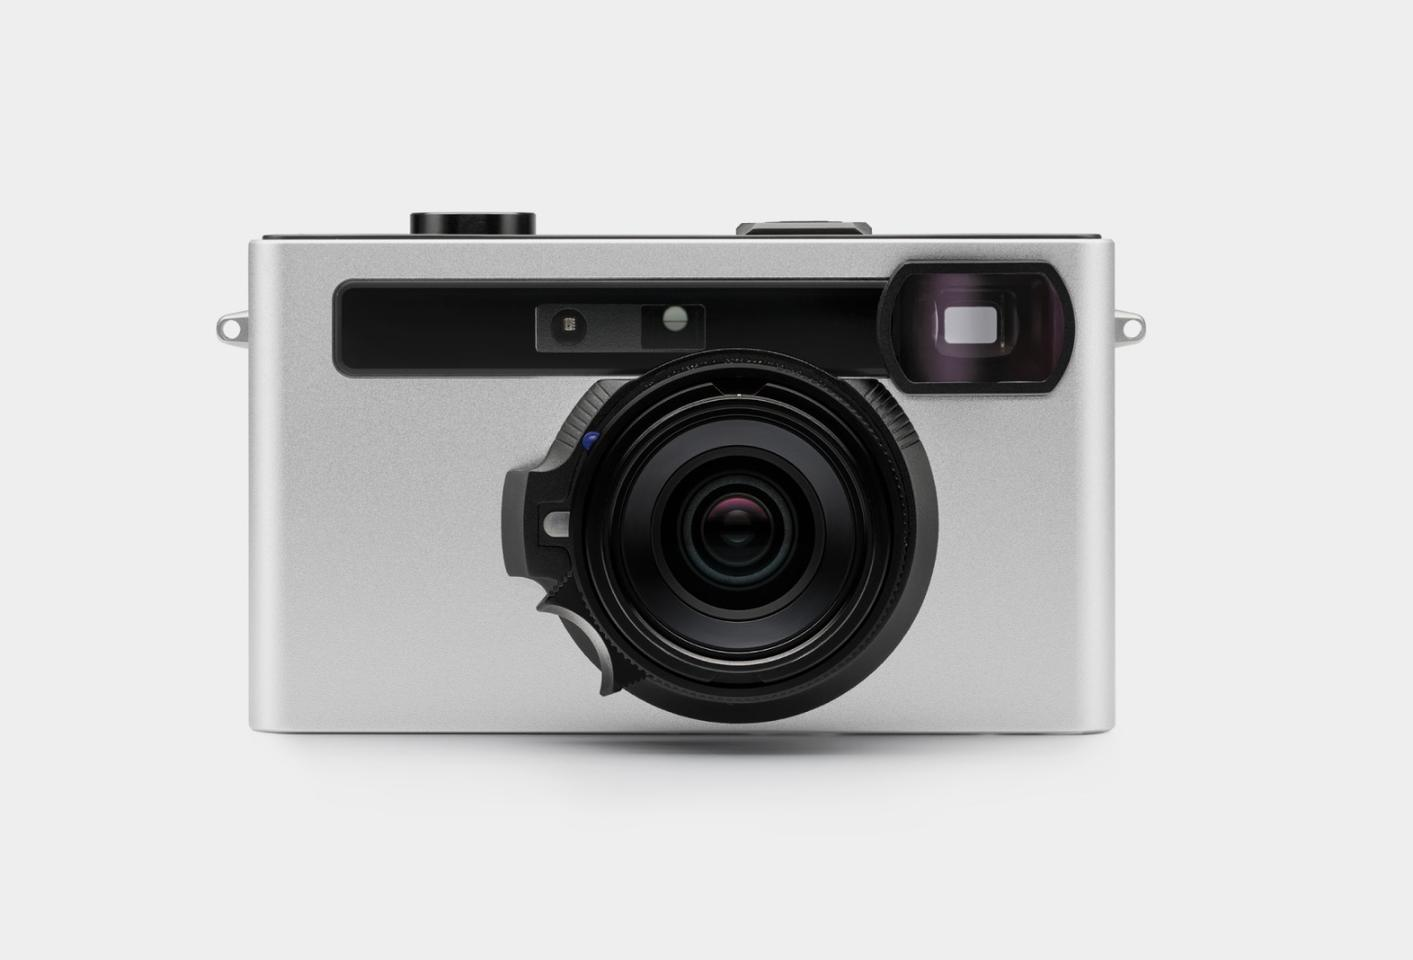 Image processing, display and storage are all taken care of through an app running on a paired smartphone, leaving the Pixii to take care of capturing memories